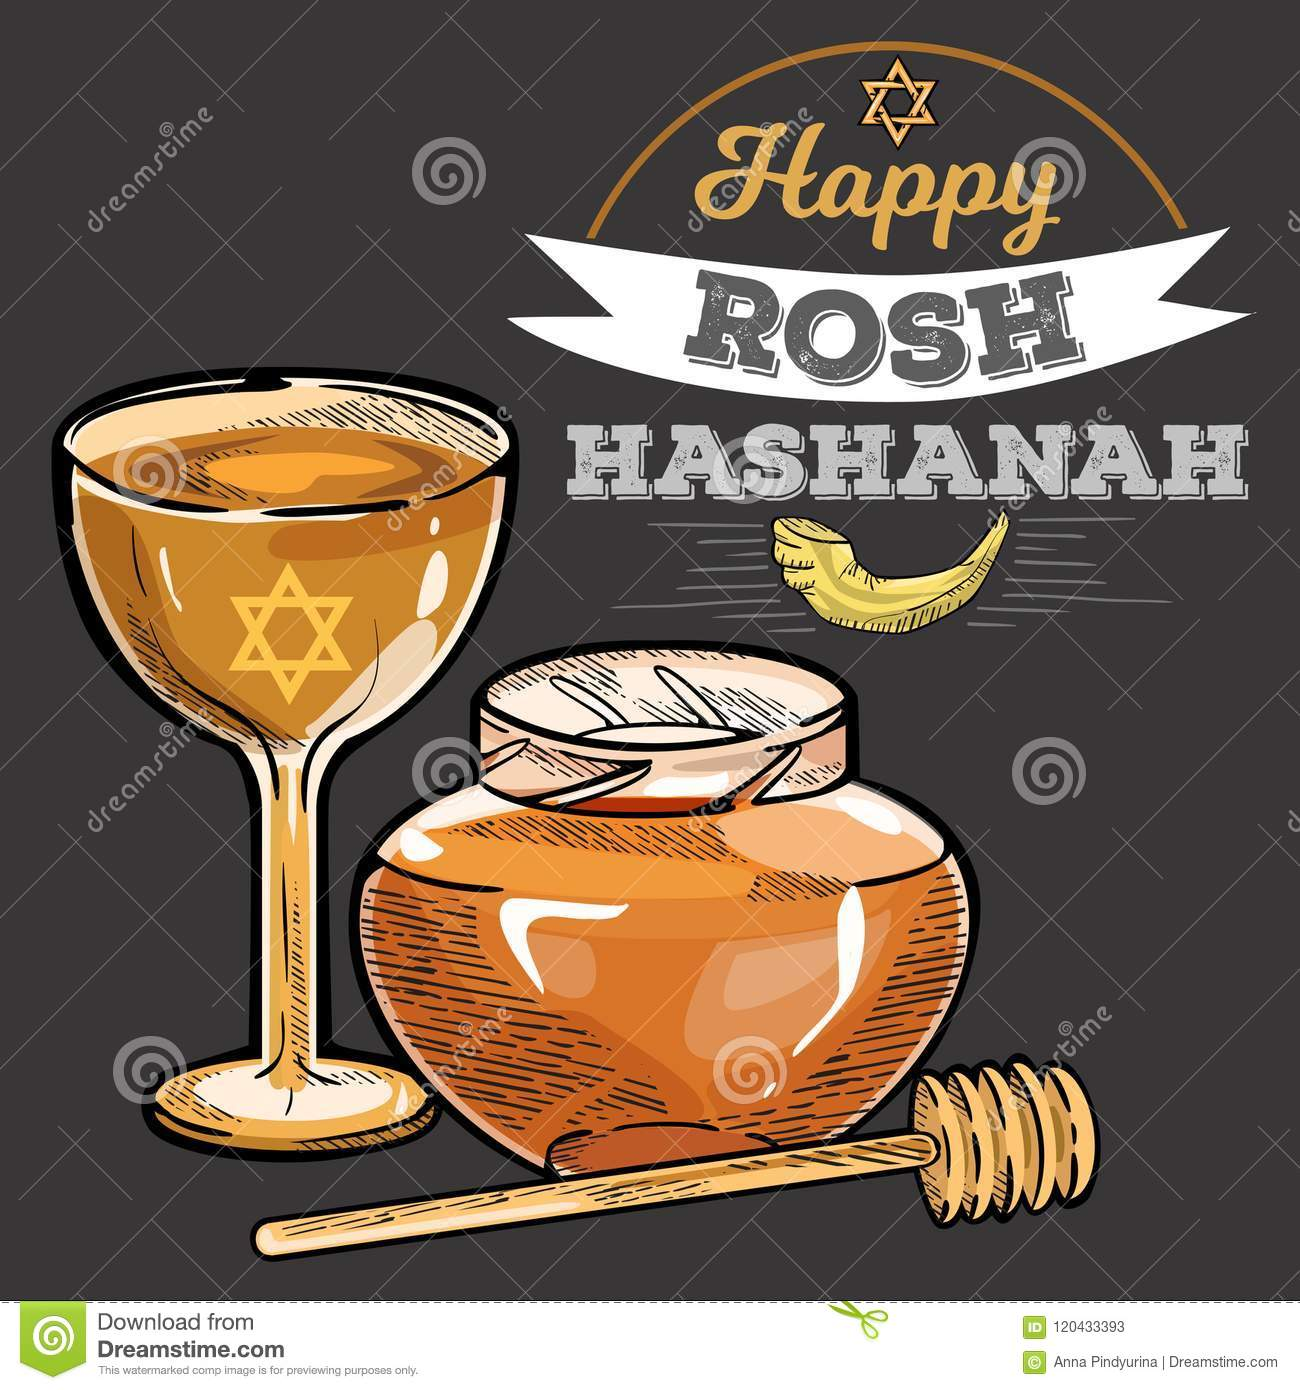 Rosh hashanah greeting card with kippur text lettering happy jewish new year shofar design with logo vector illustration glass of wine and honey cartoon